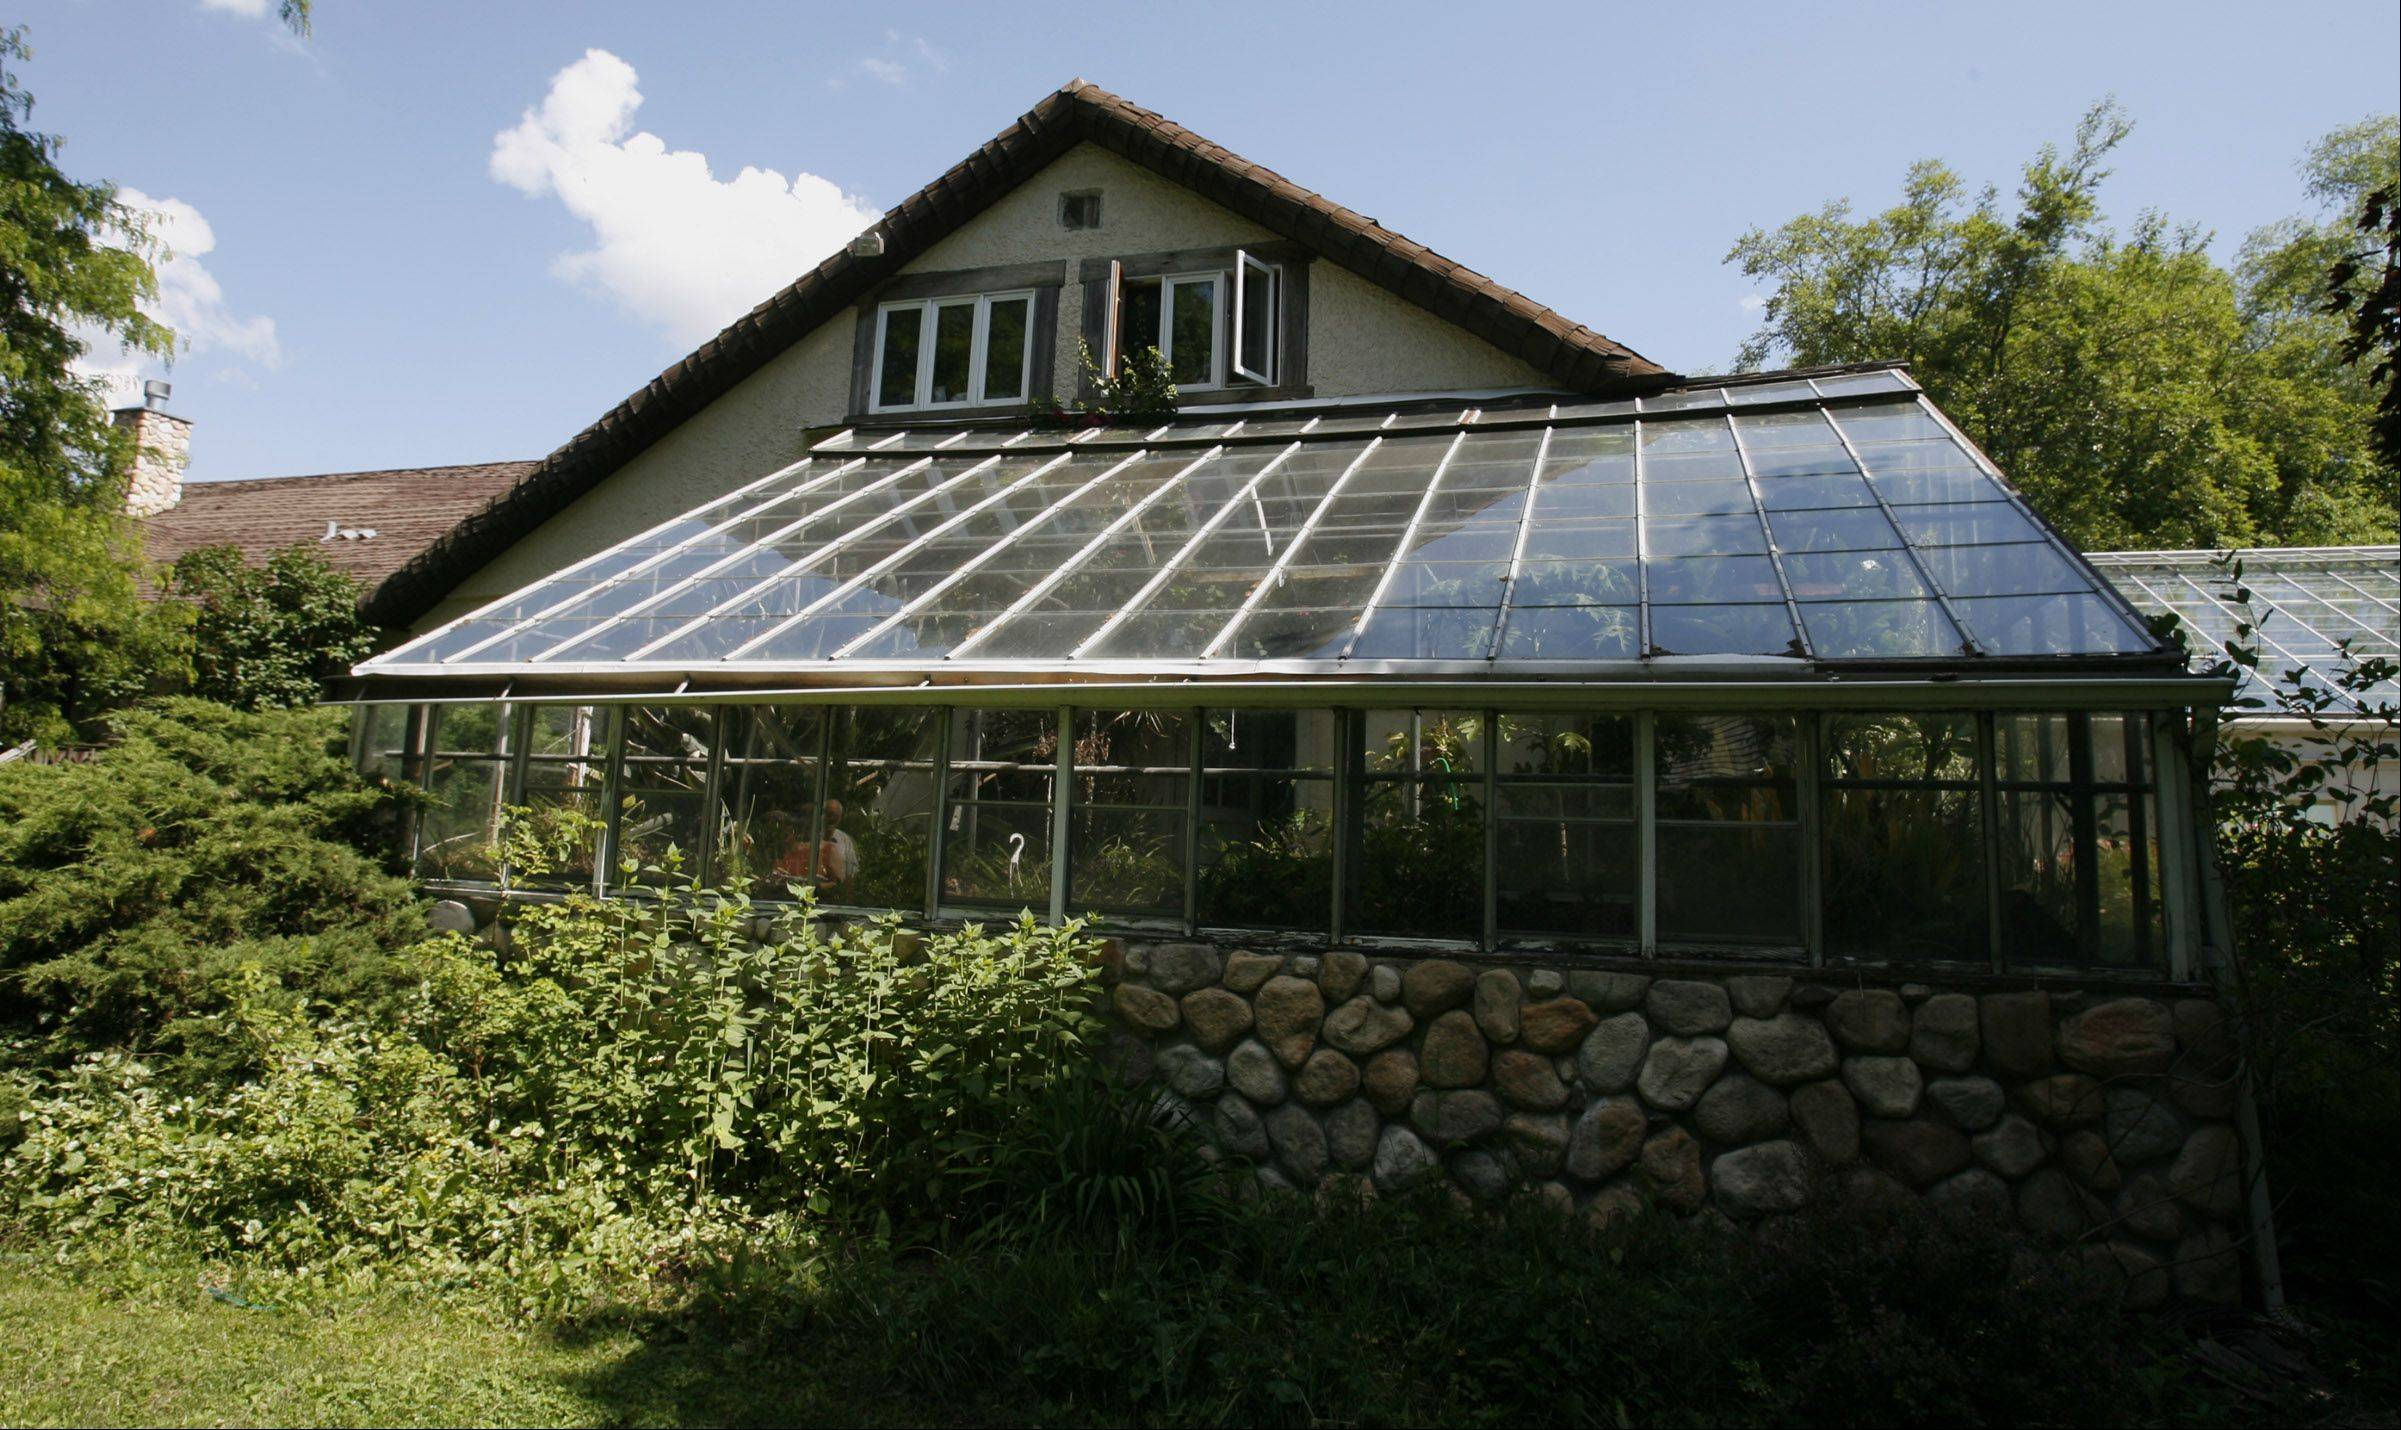 The Long Grove home has a greenhouse in the rear.